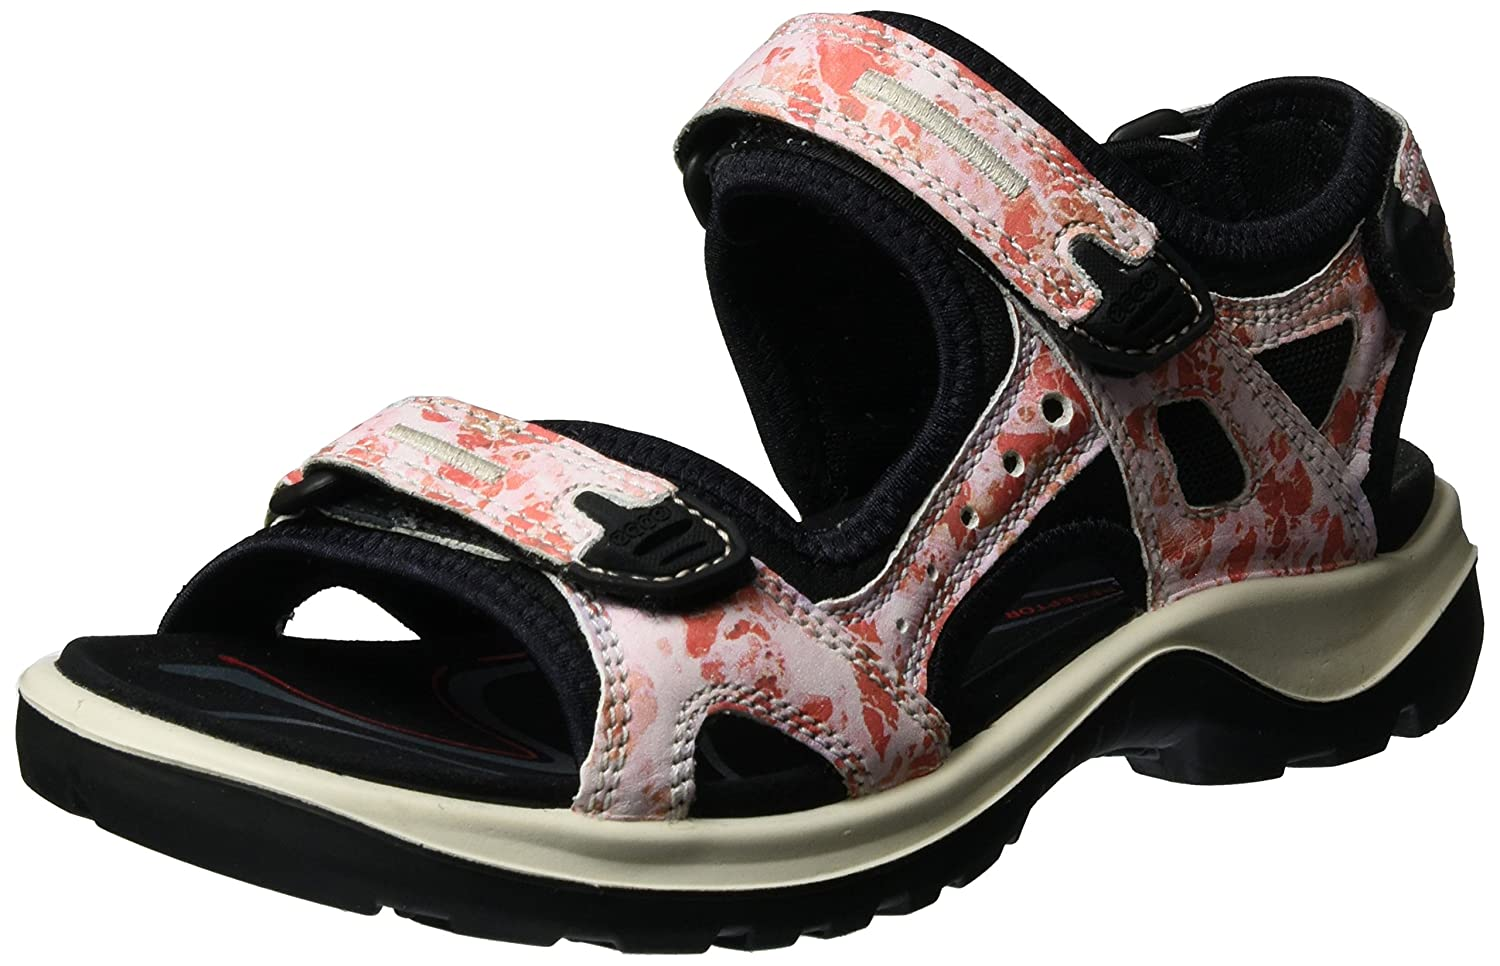 ee9d8e8b1f ECCO Shoes Women's Offroad Athletic Sandals